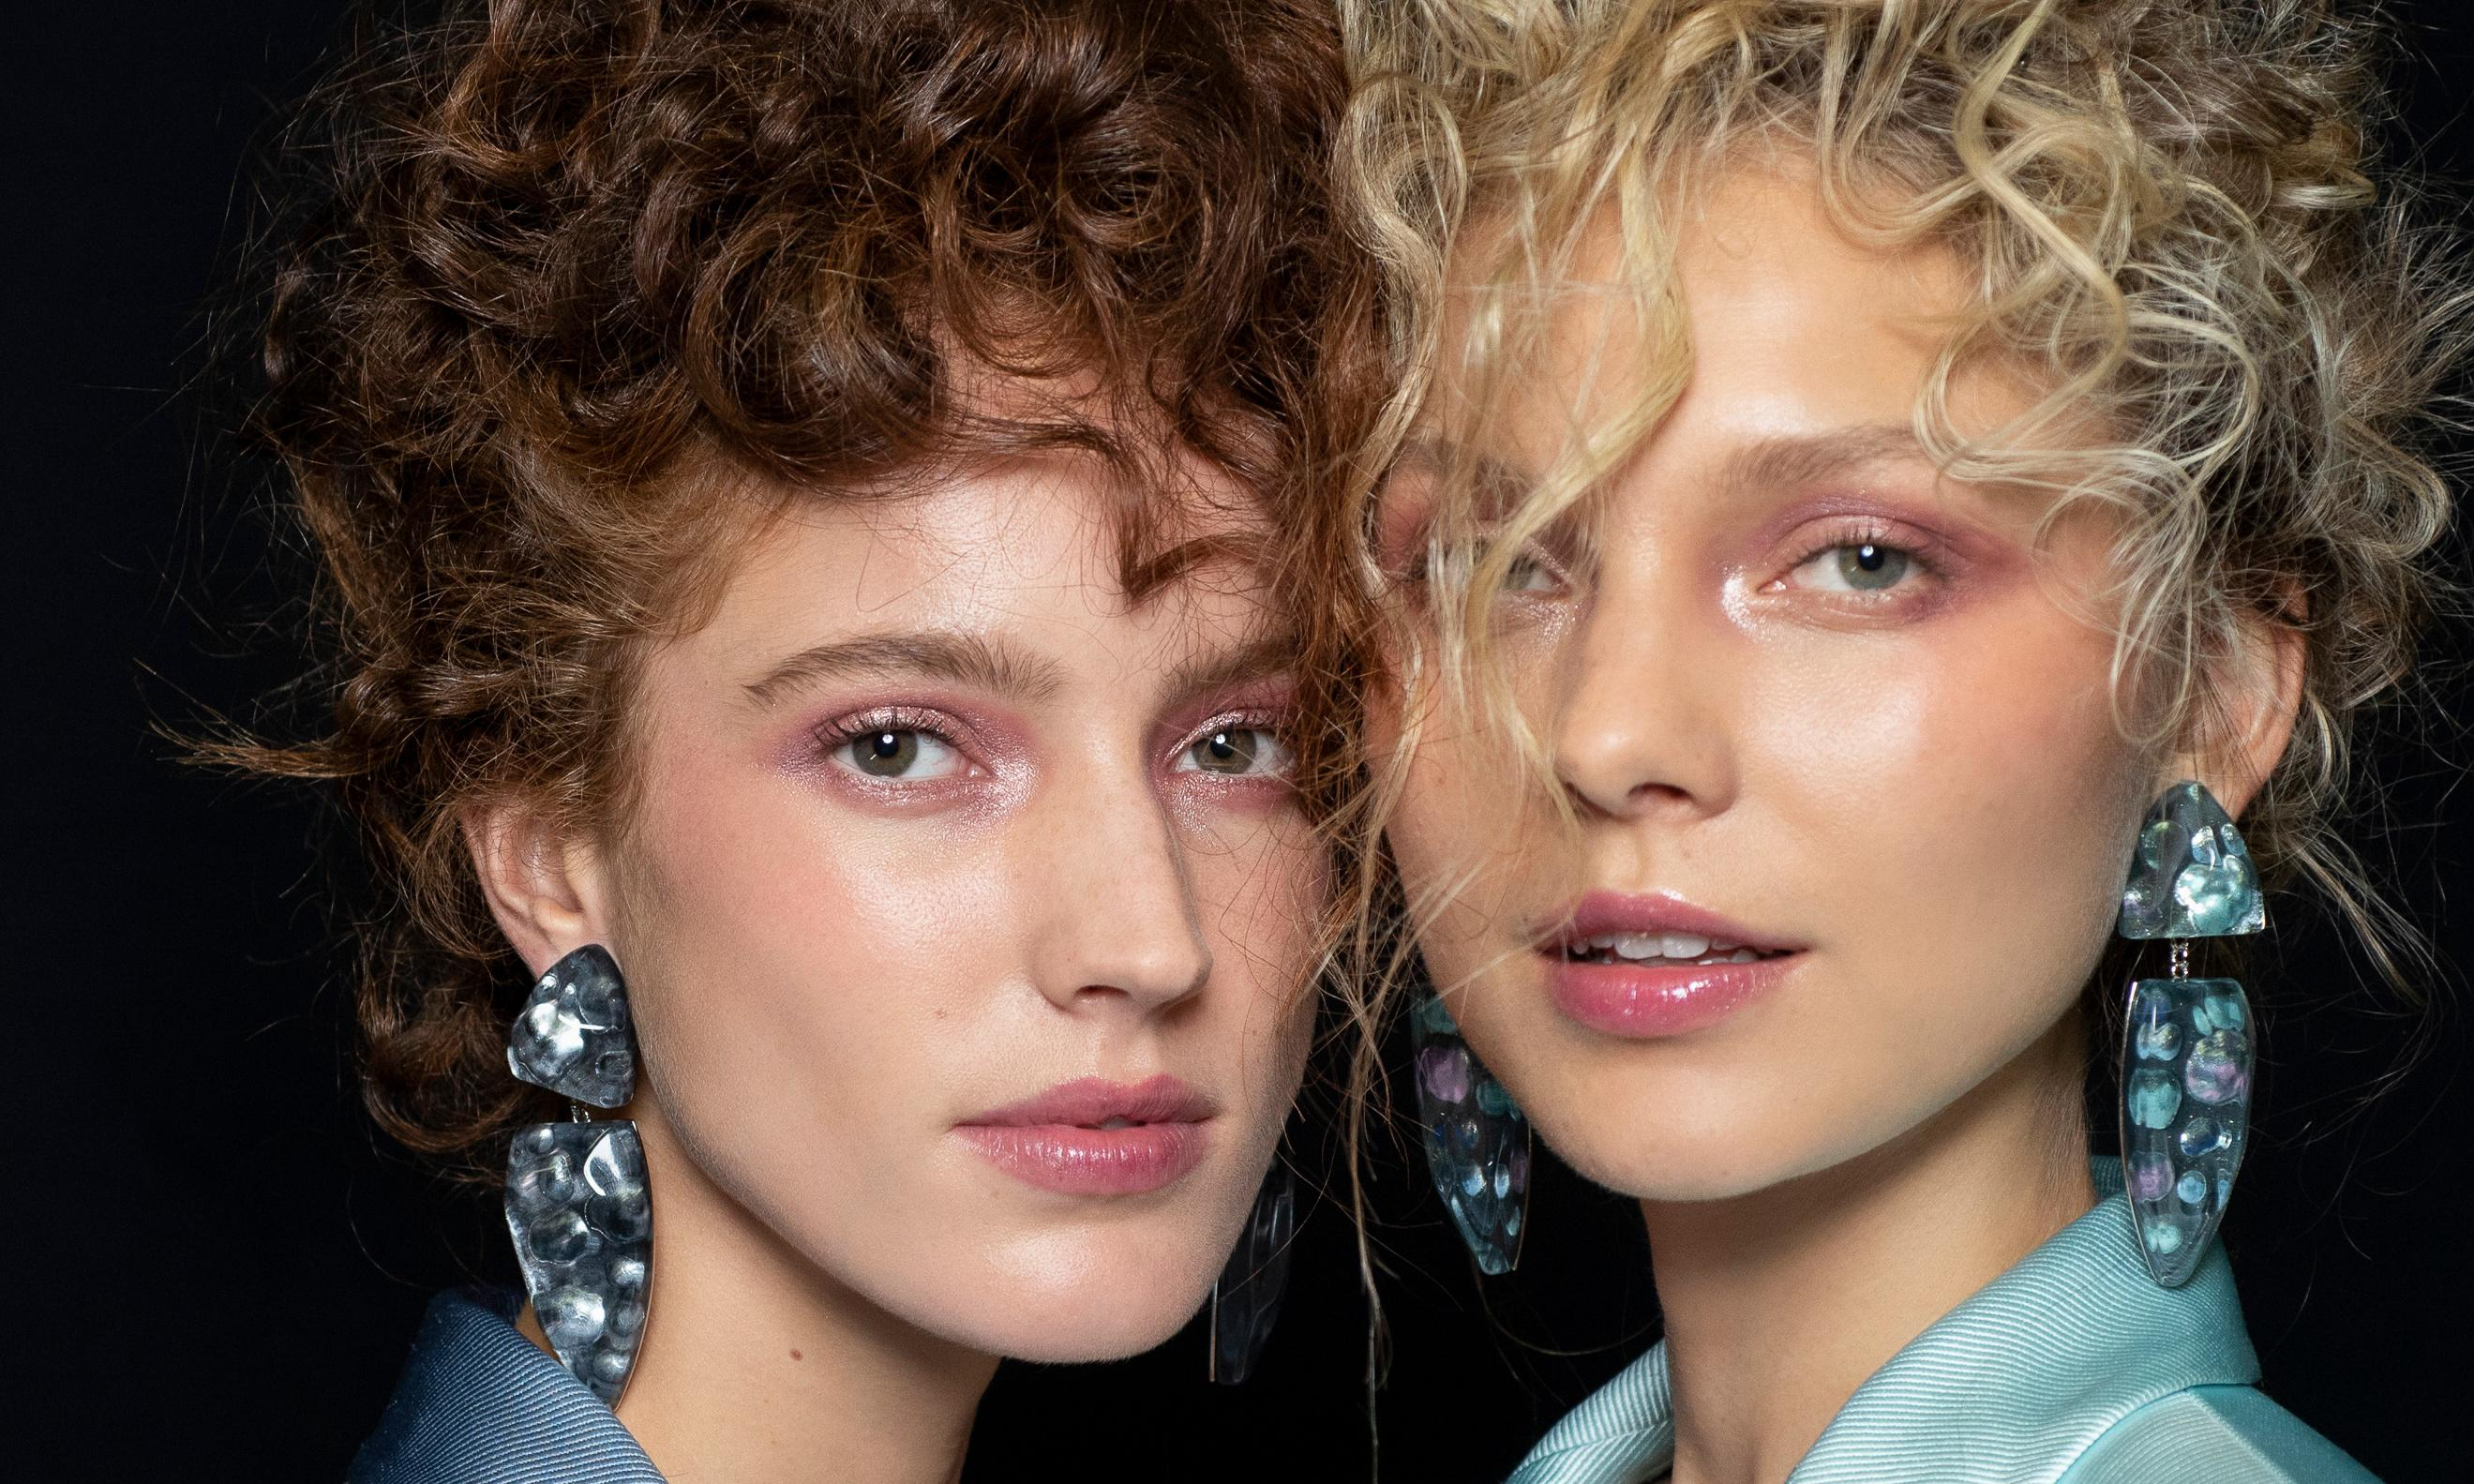 Pretty in pink: how to shimmer and shine